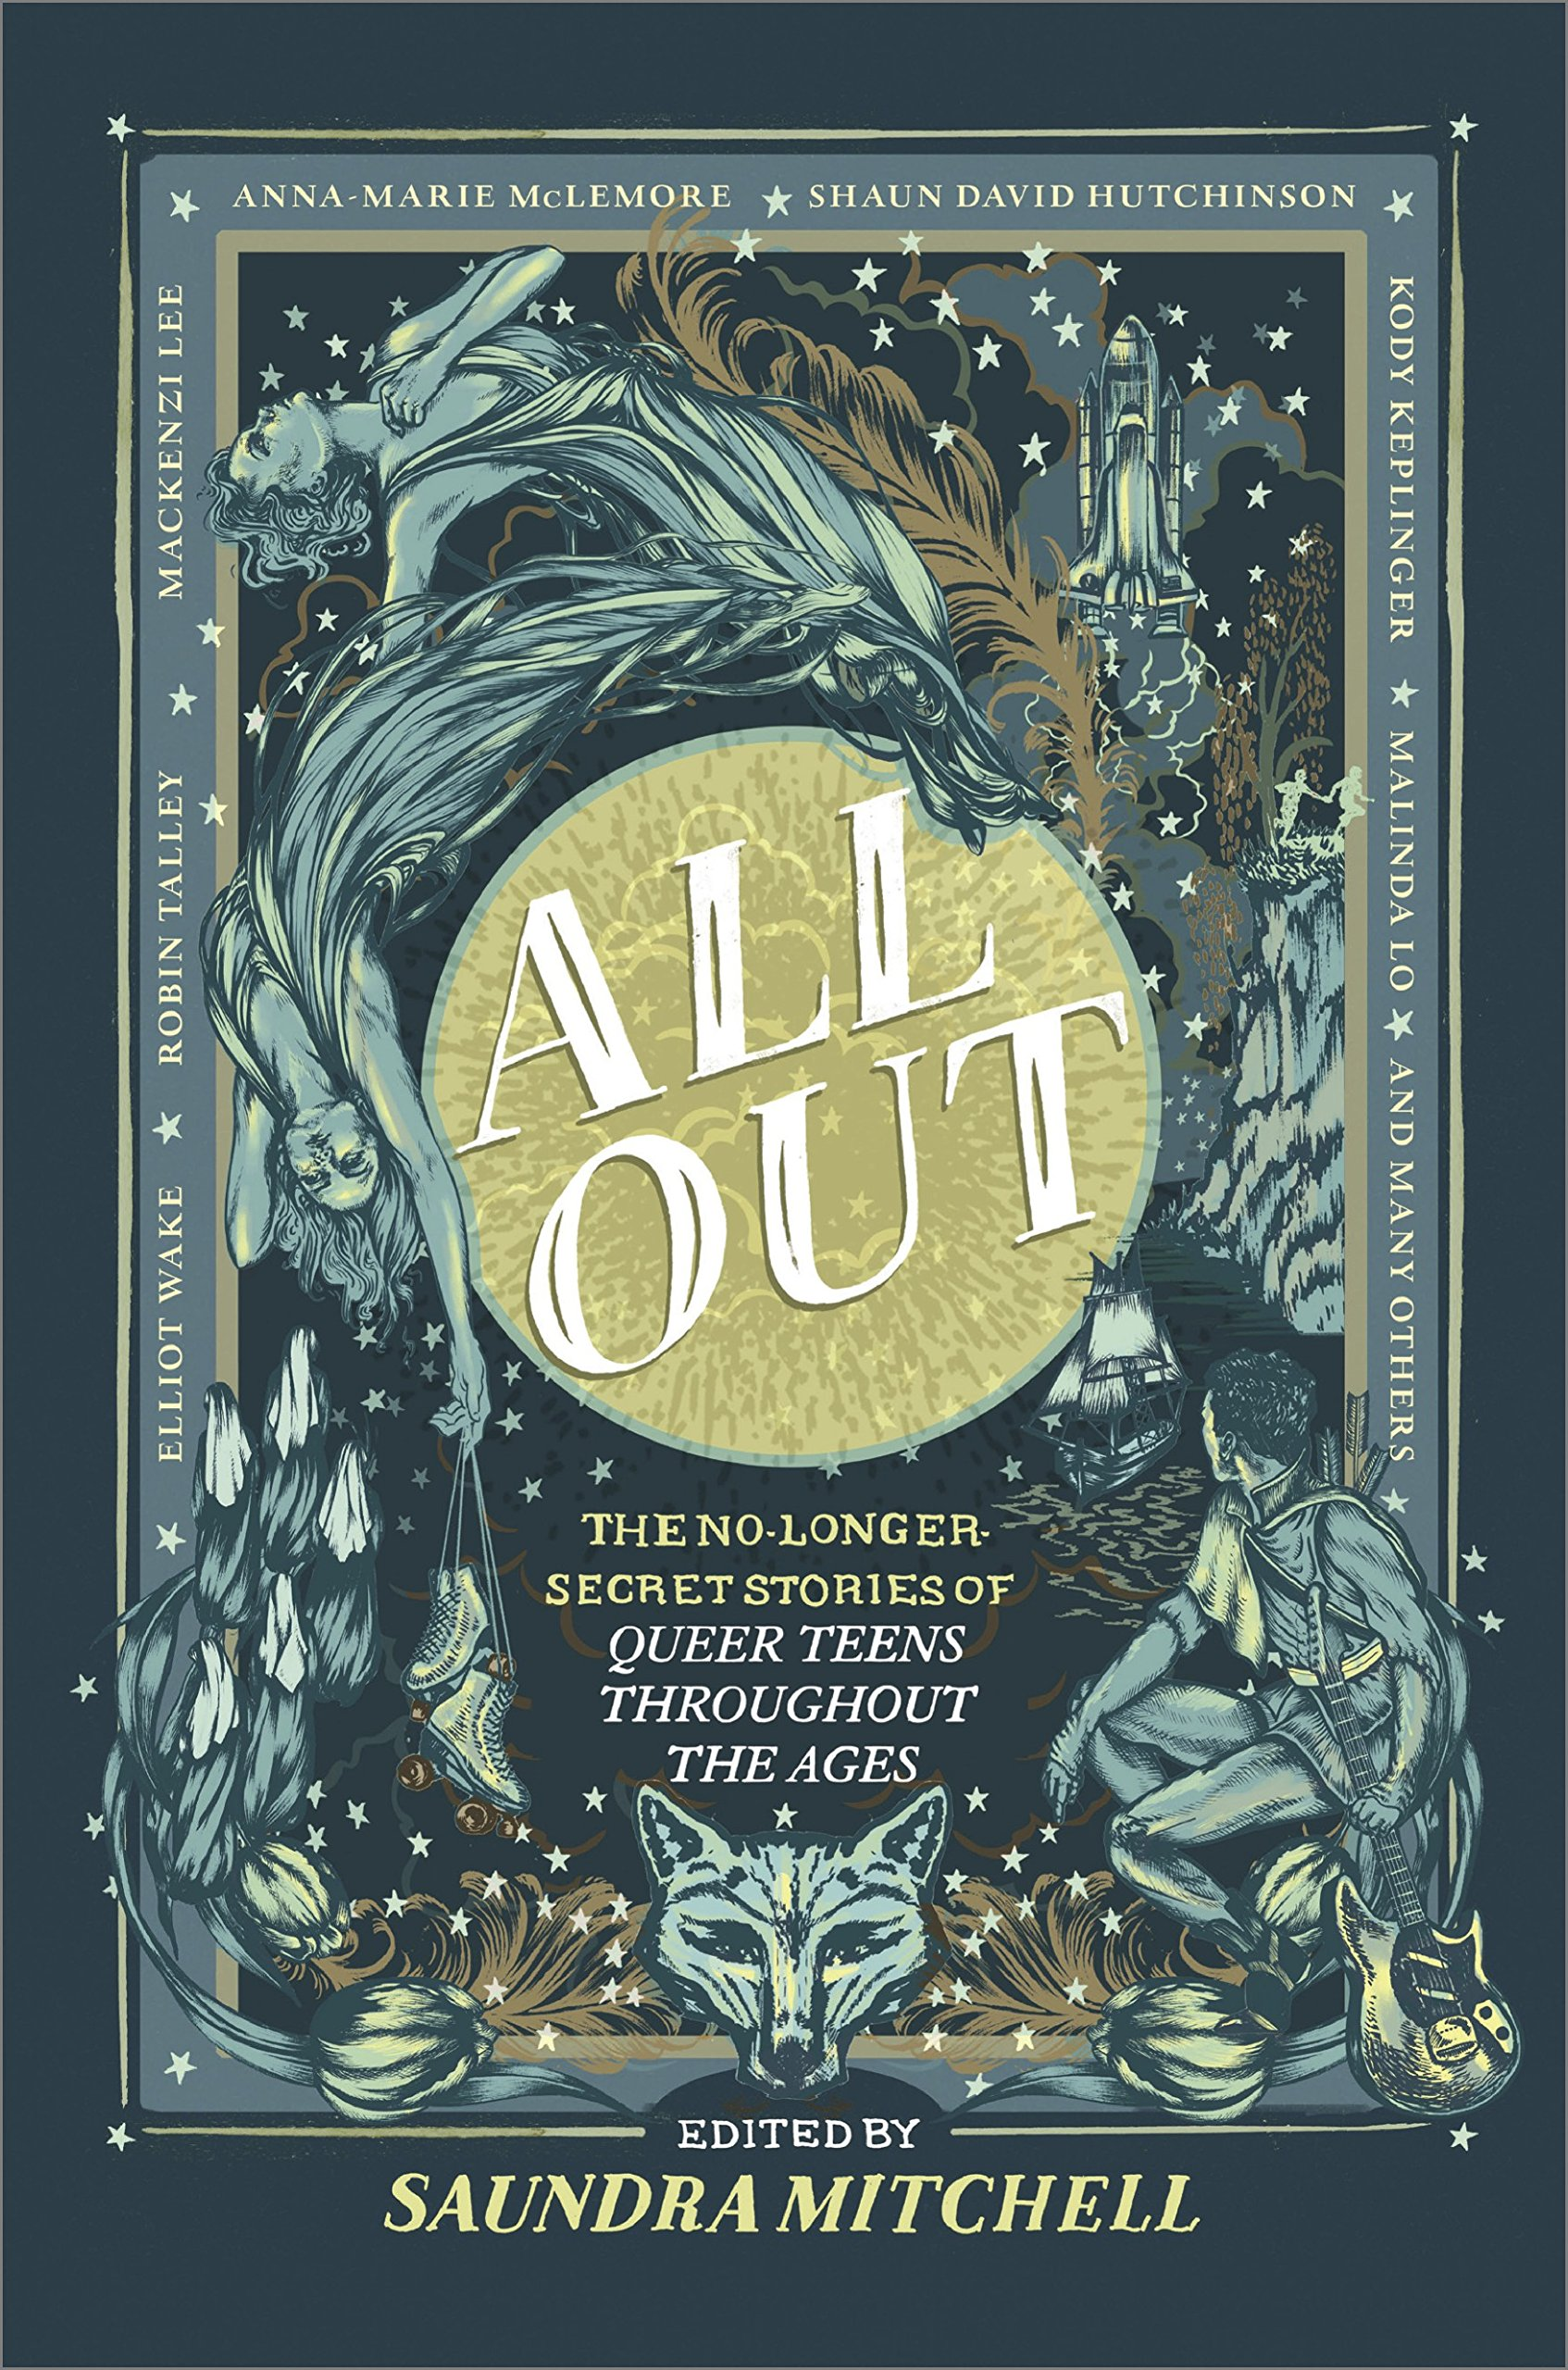 All-Out: The No-Longer-Secret Stories of Queer Teens Throughout the Ages, edited by Saundra Mitchell